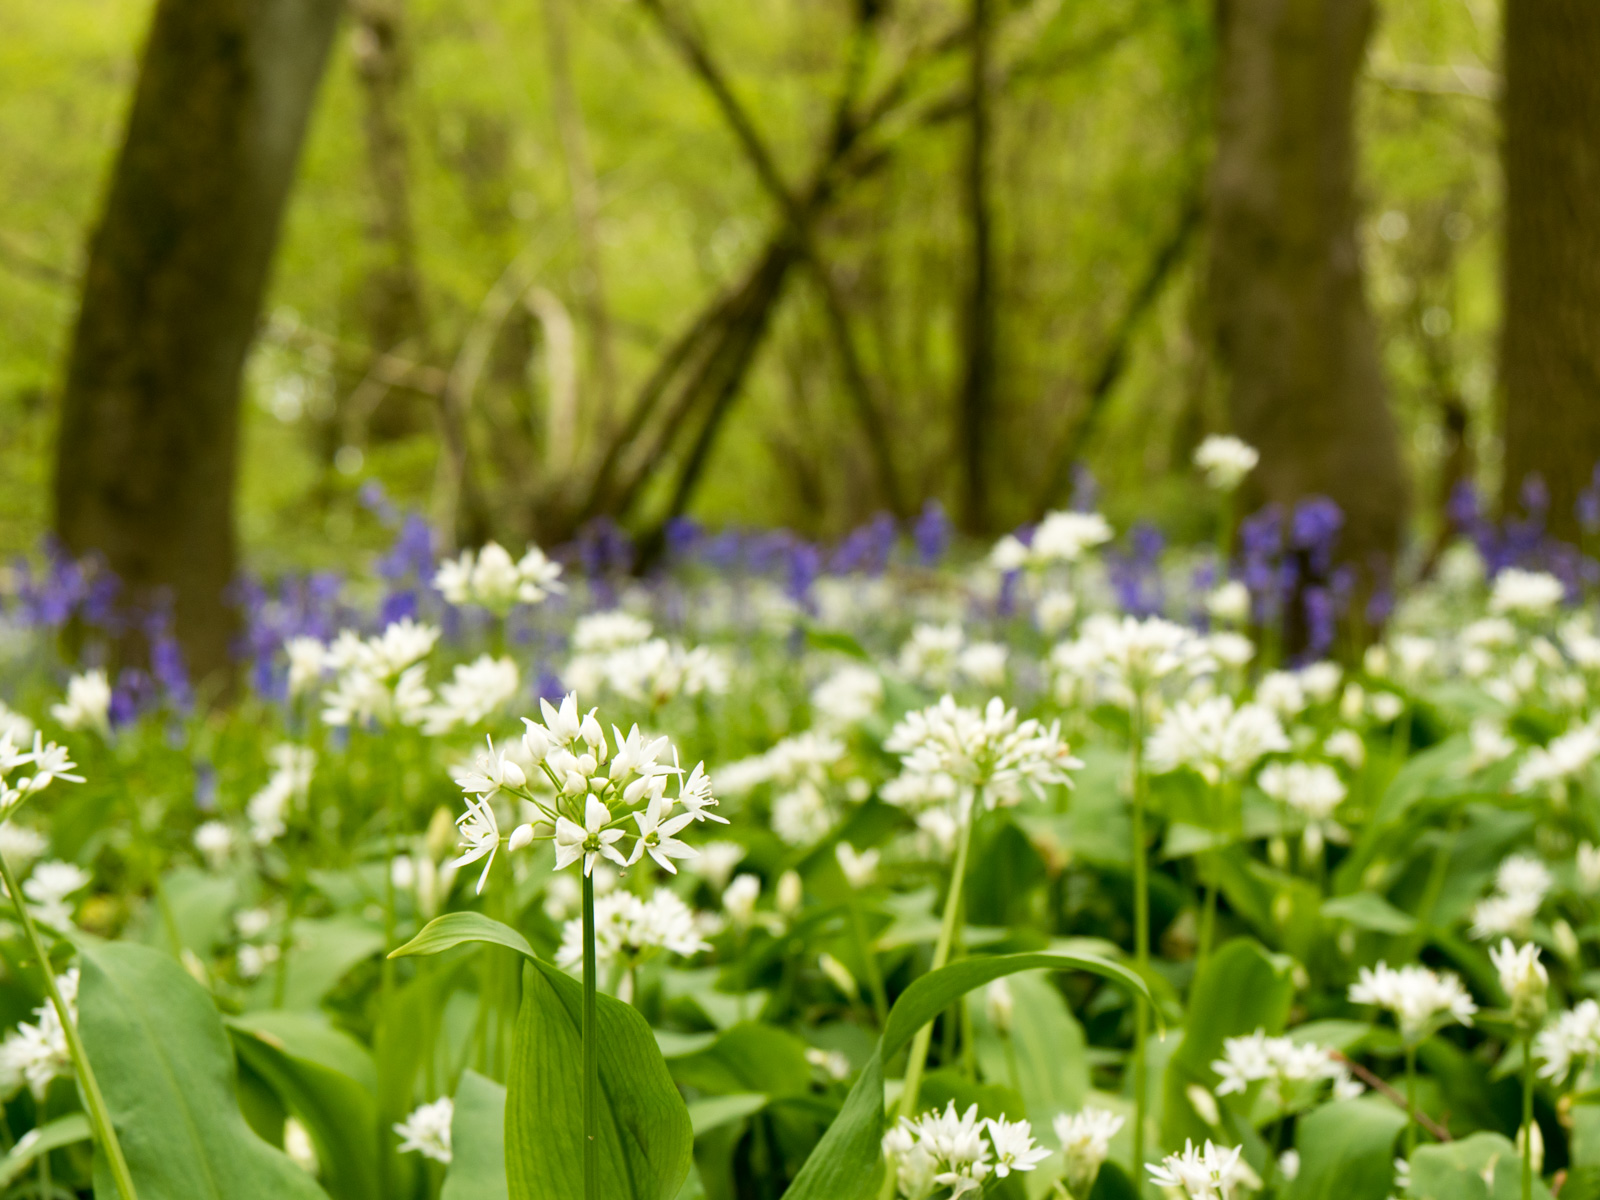 Bluebells and some white flower